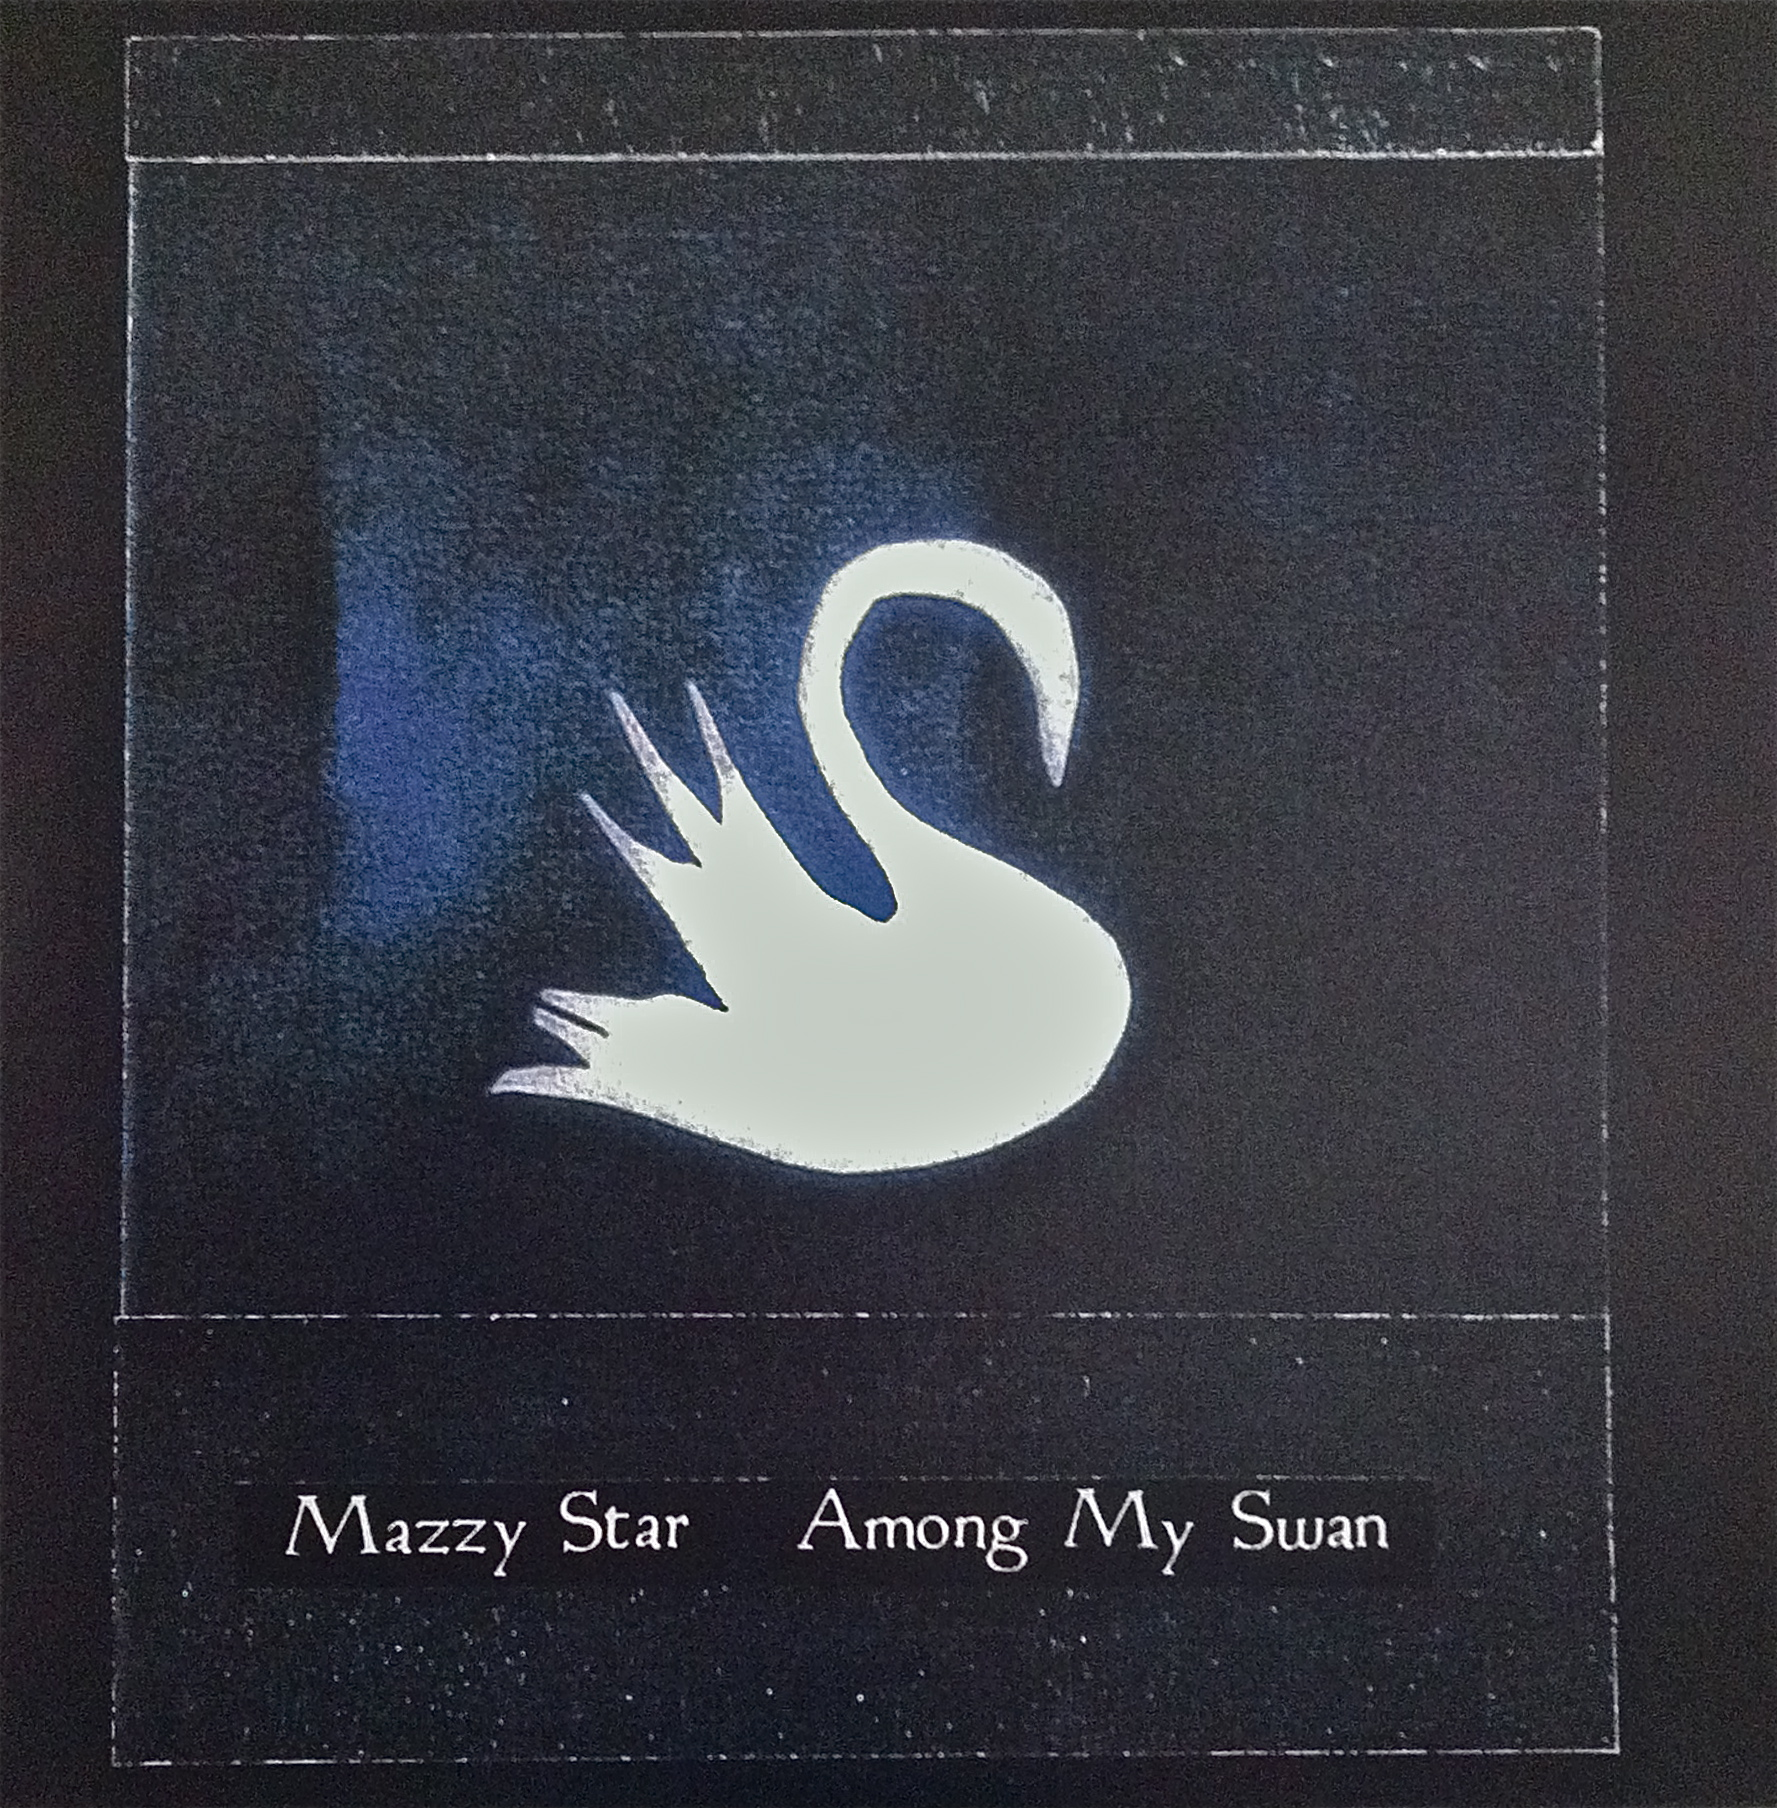 Mazzy Star To Play First Live Show In Over Five Years